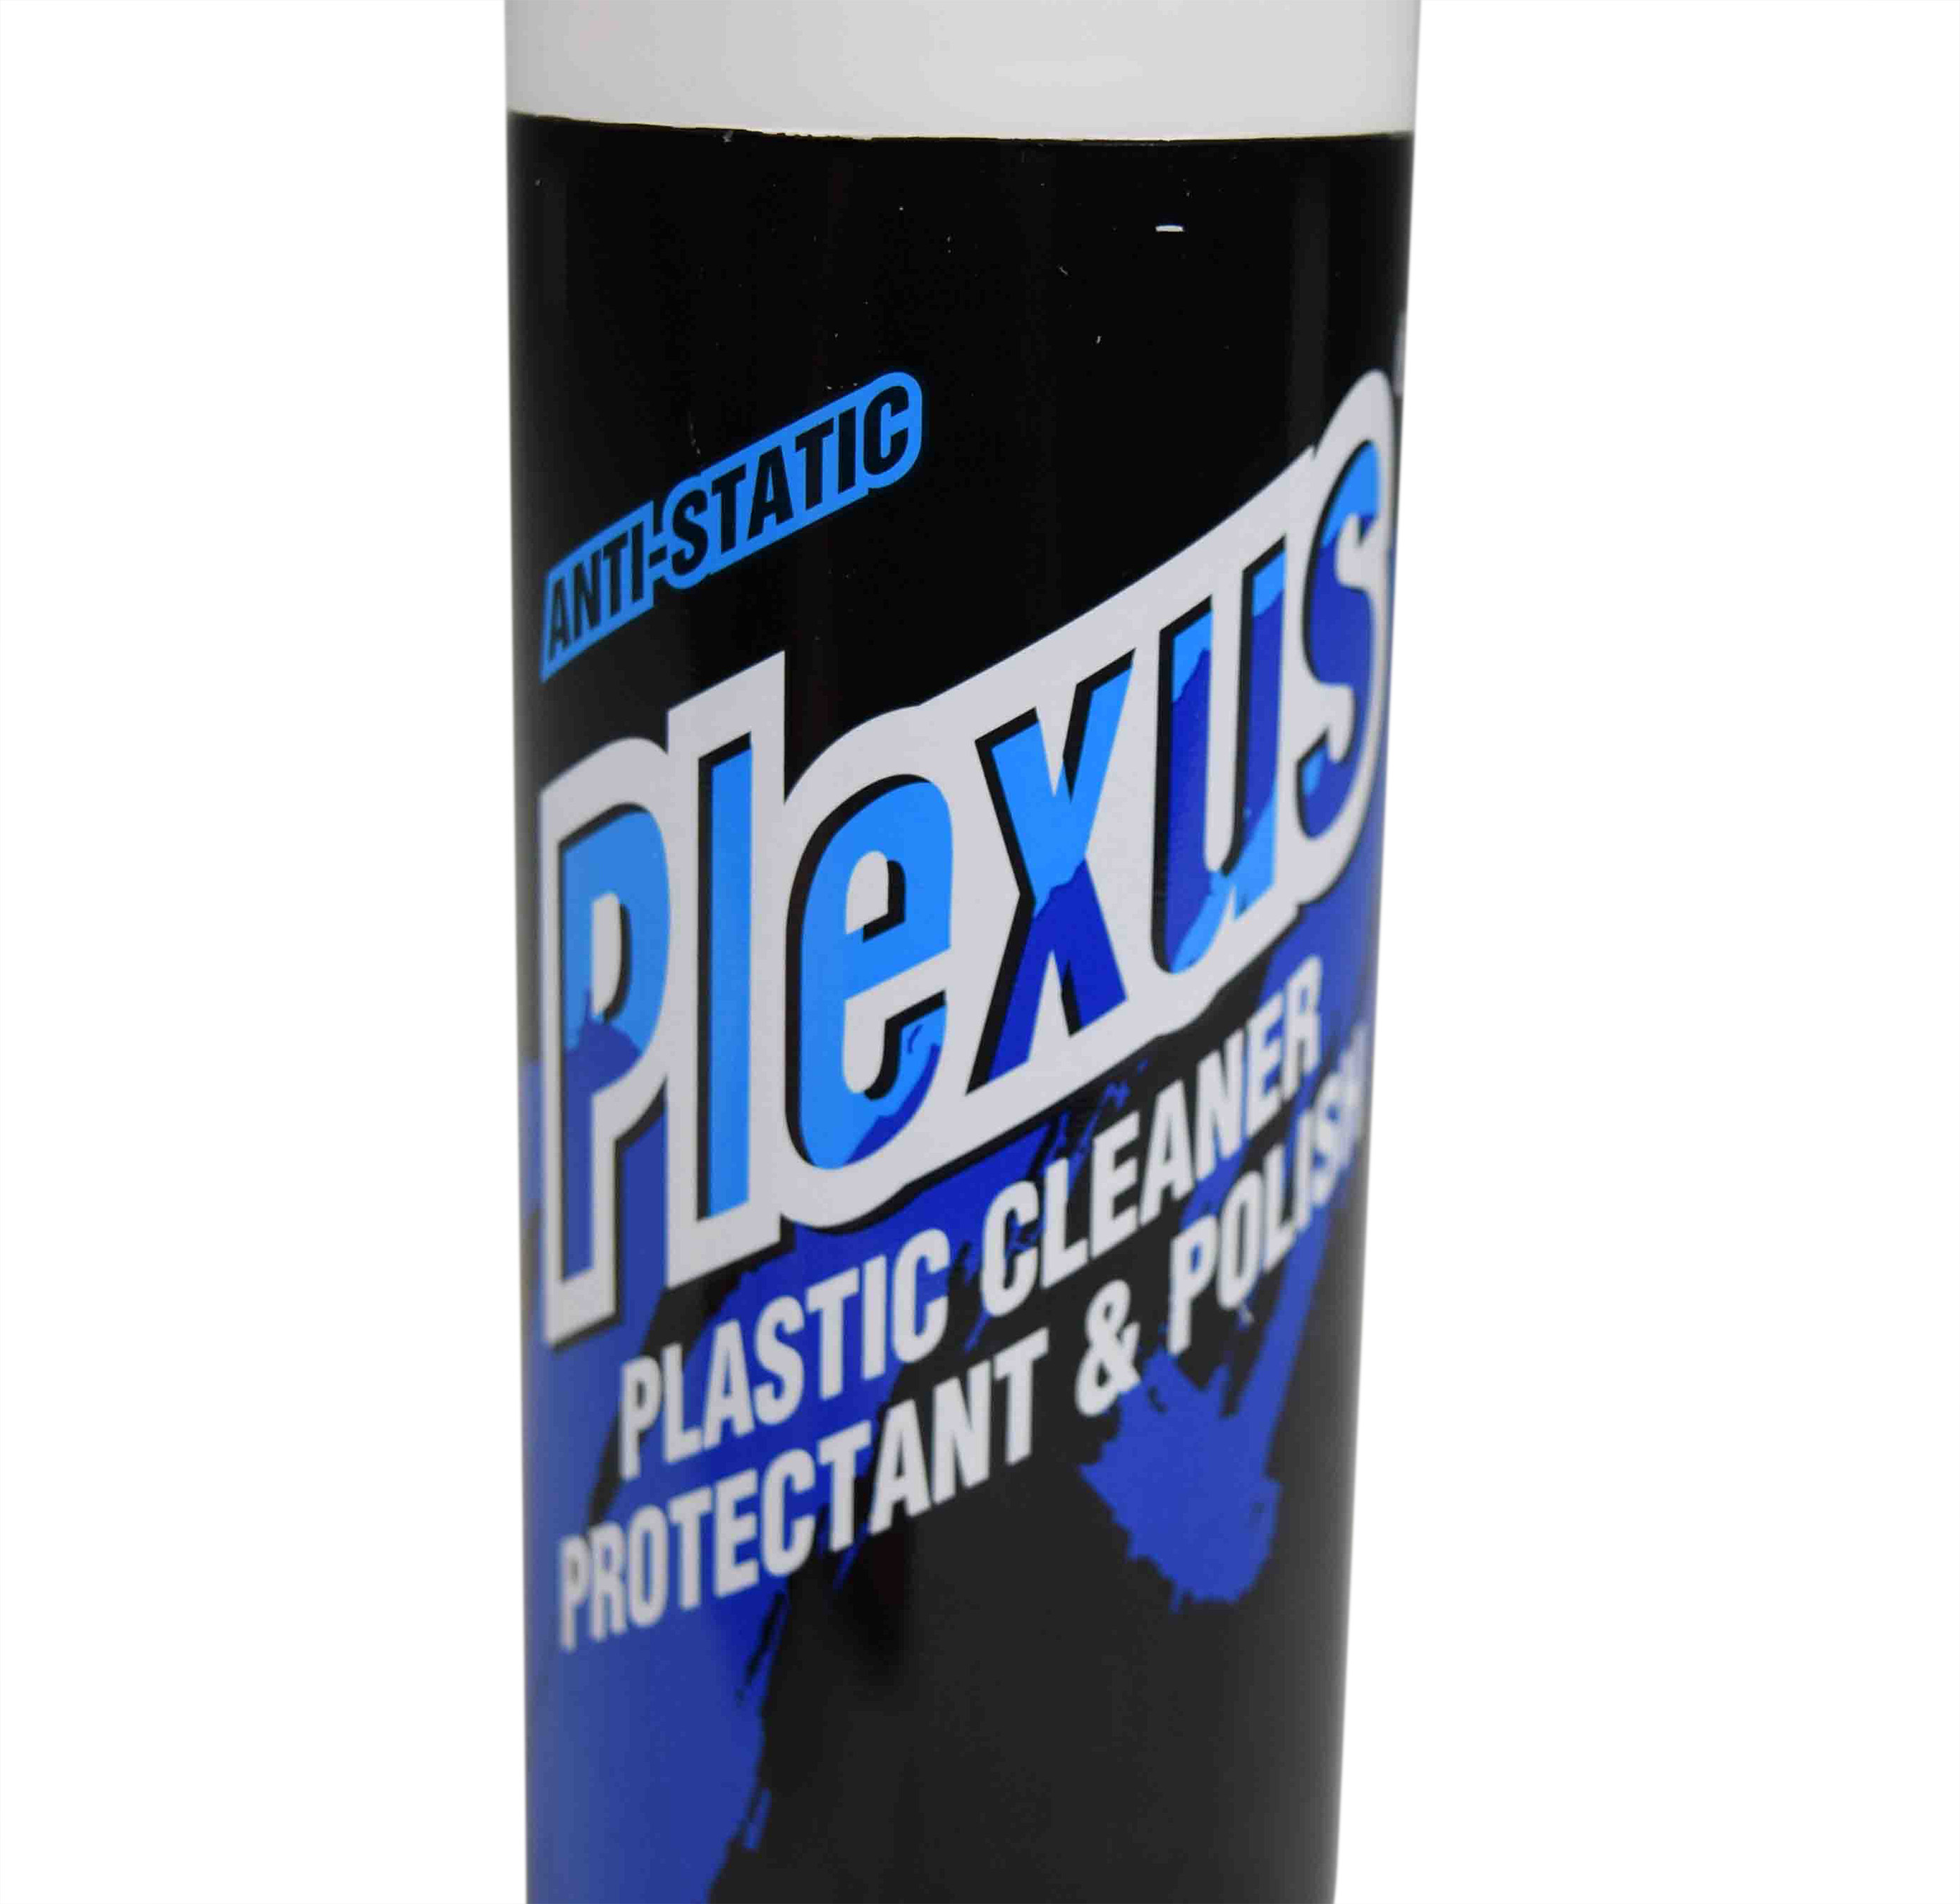 Plexus-Plastic-Cleaner-Protectant-Polish-7oz-Can-7-Pack-MADE-In-the-USA-image-3